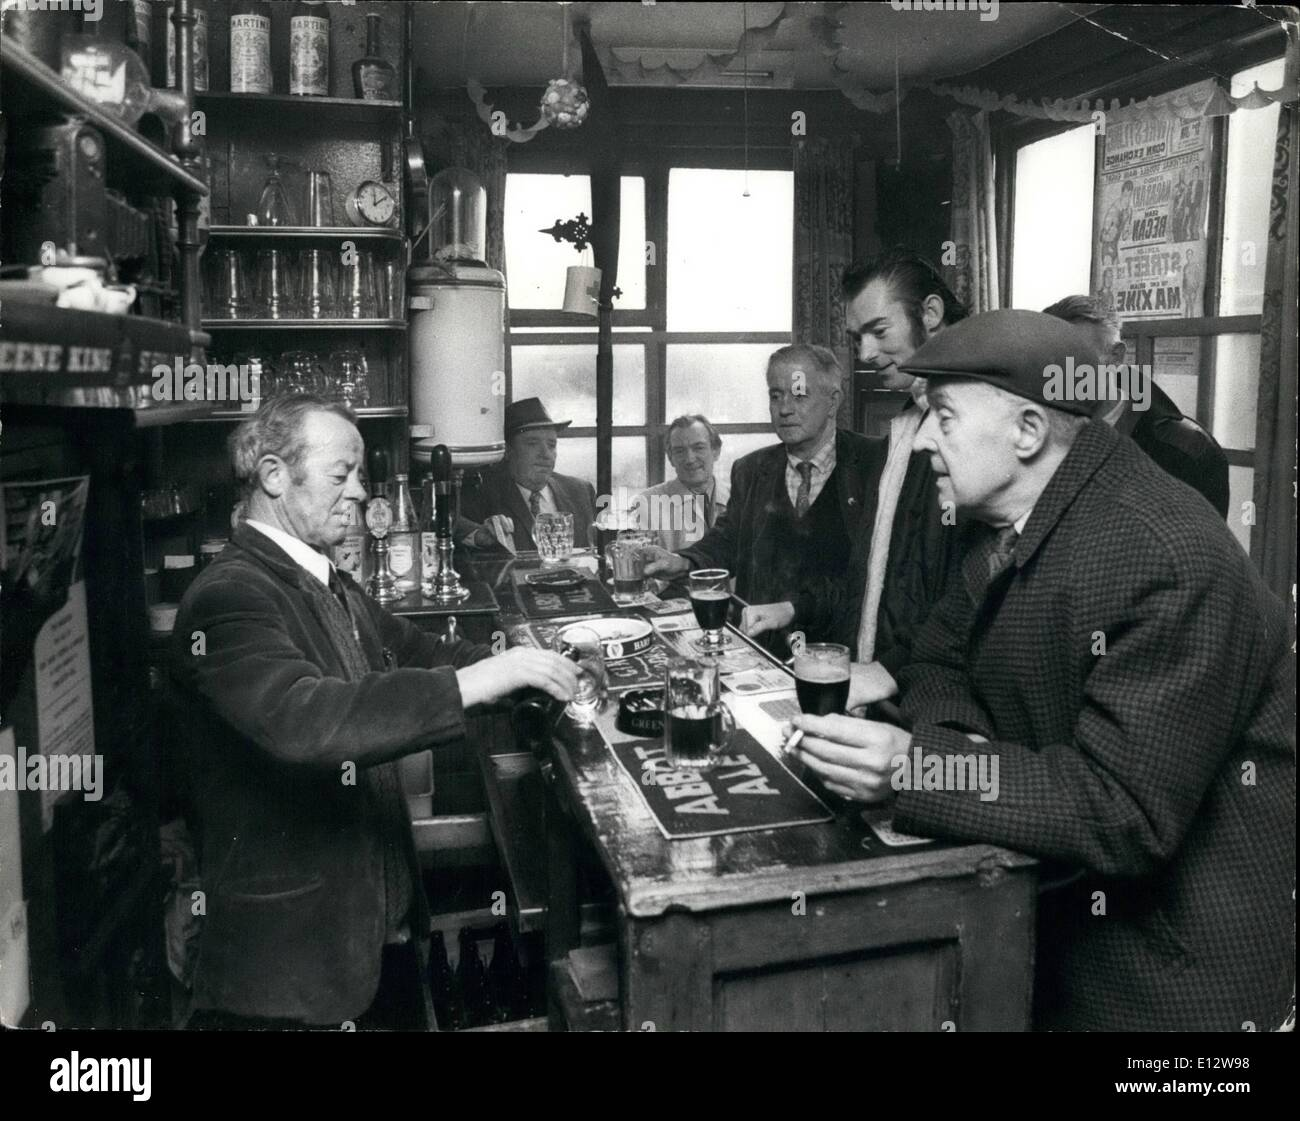 Feb. 25, 2012 - Ted McCallam serves customers in the pub and acknowledged as the smallest in the United Kingdom. It is The Nutshell at Bury St. Edmunds, Suffolk. - Stock Image